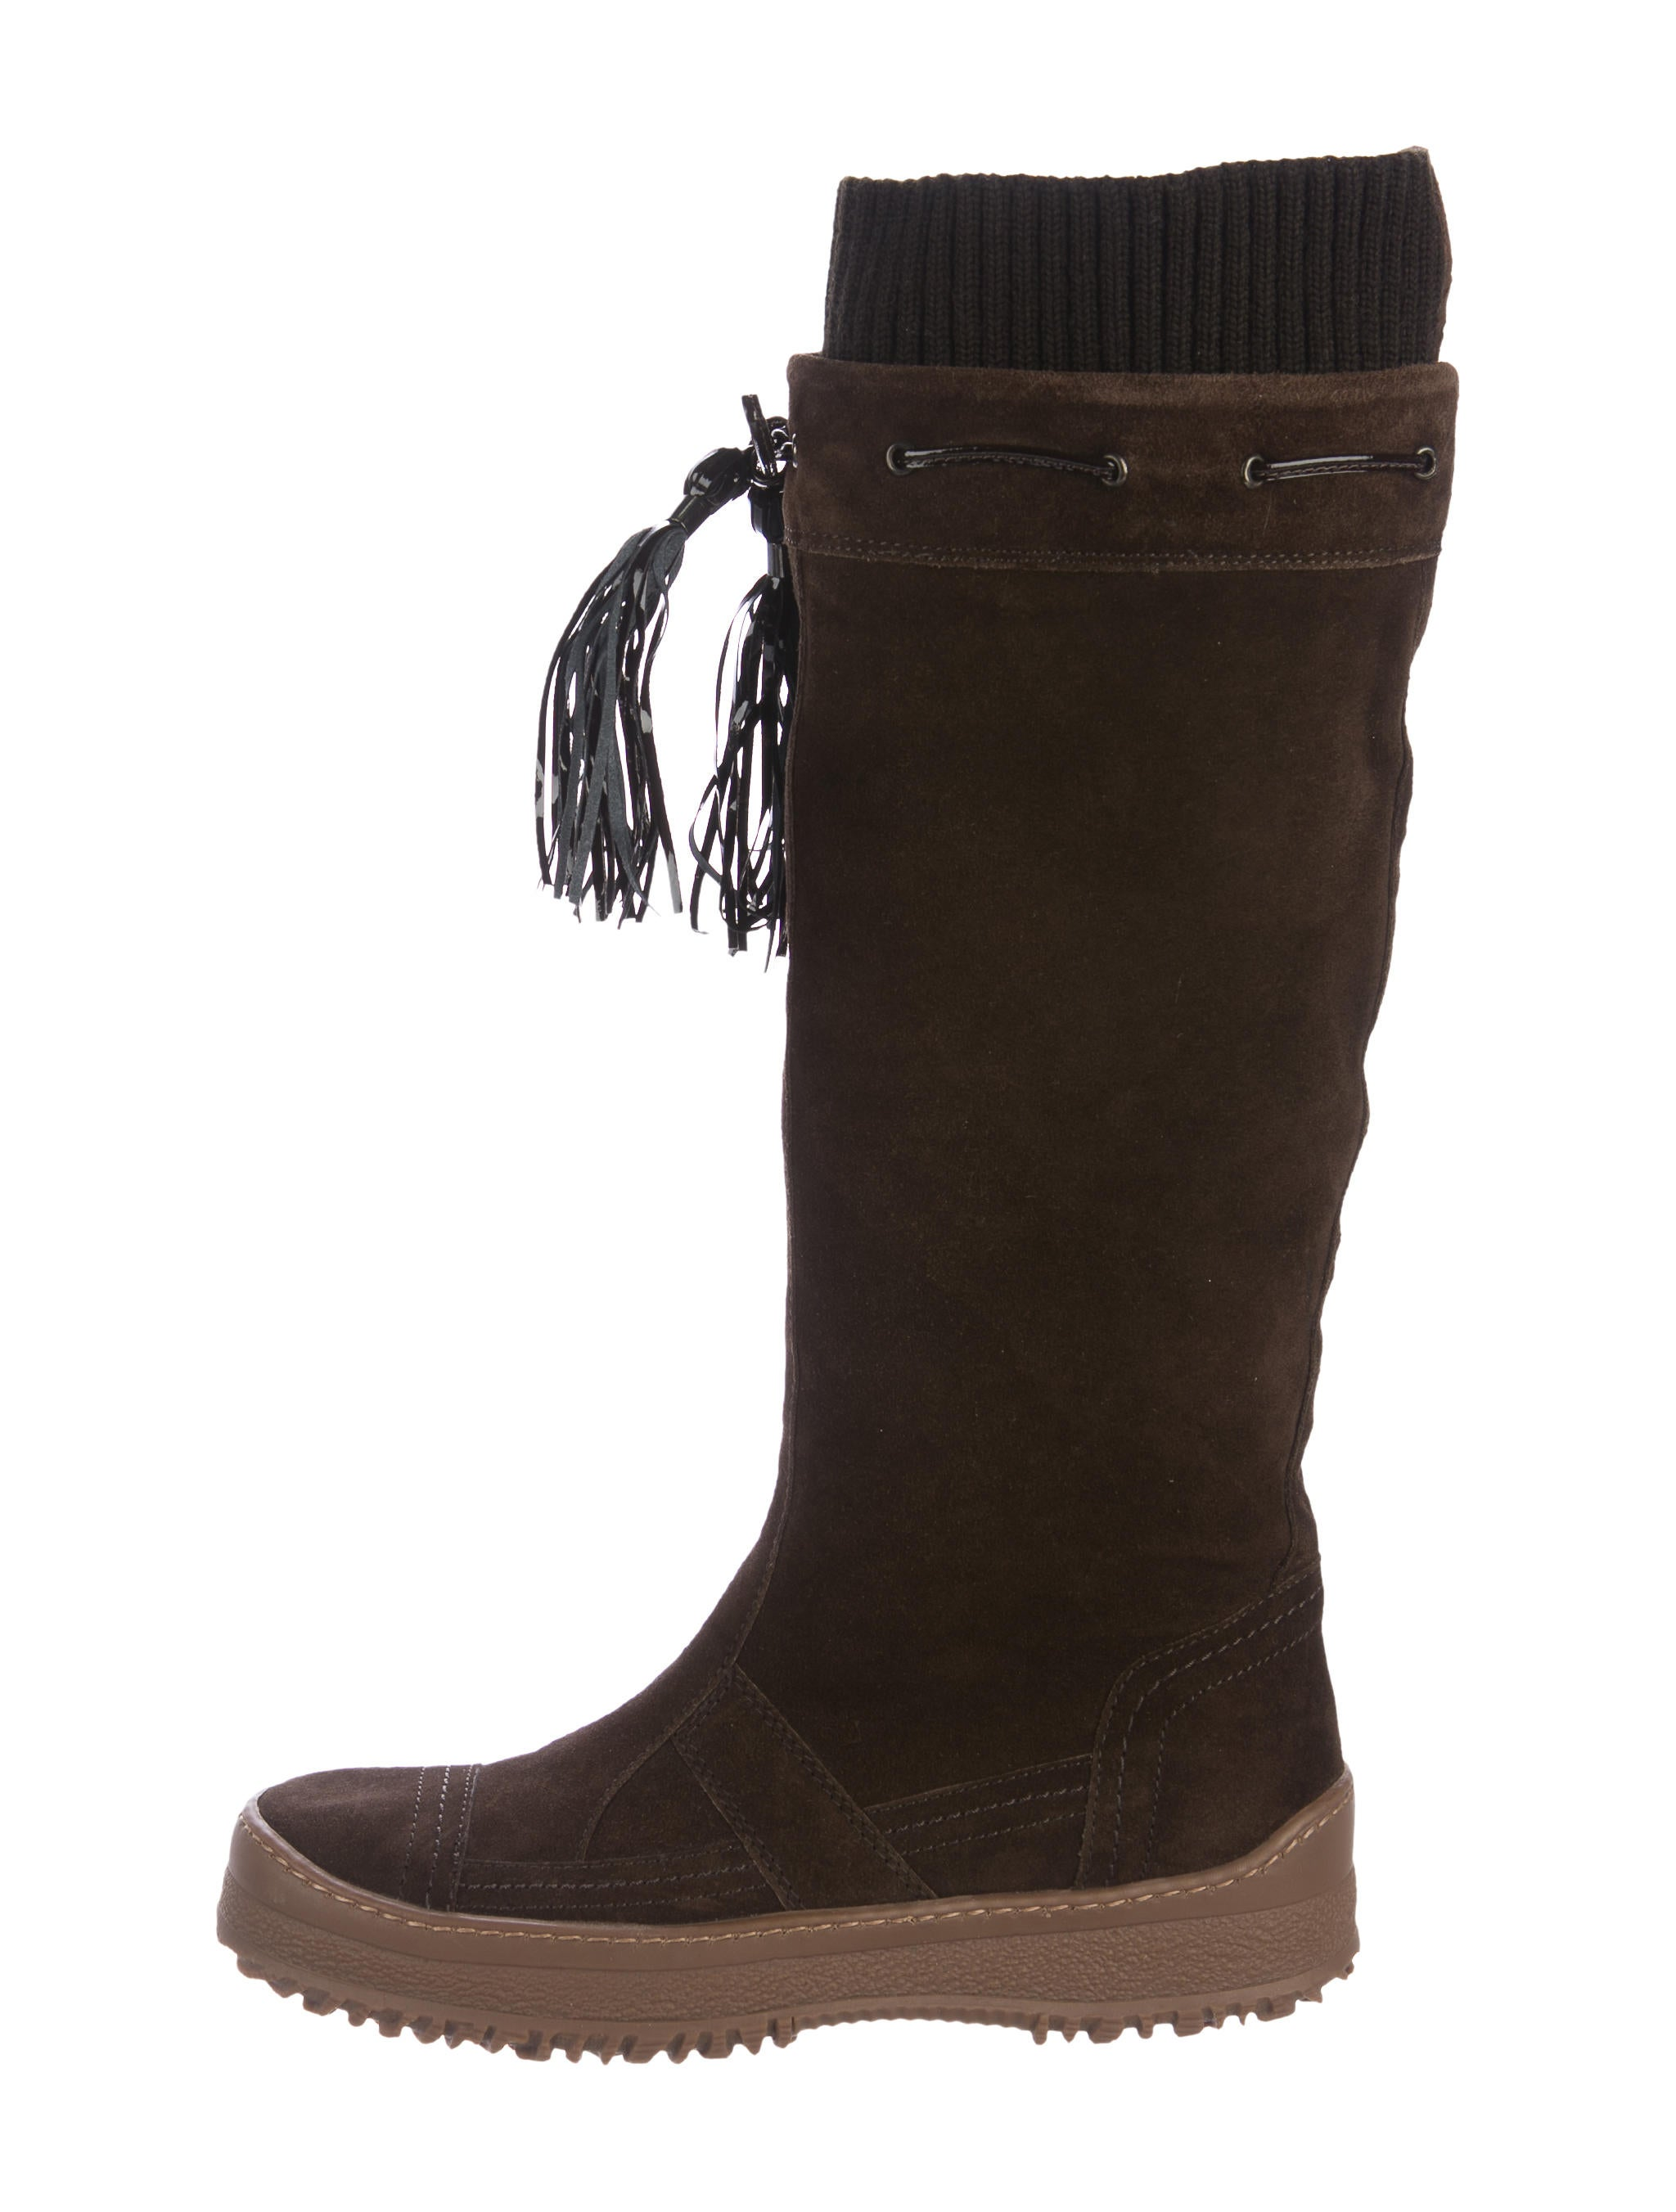 Alegria Suede & Knit Mid-calf Boots w/ Faux Fur - Nanook is rated out of 5 by Rated 5 out of 5 by Ellen from Love! This is my first pair of Alegria and it won't be the last/5(21).